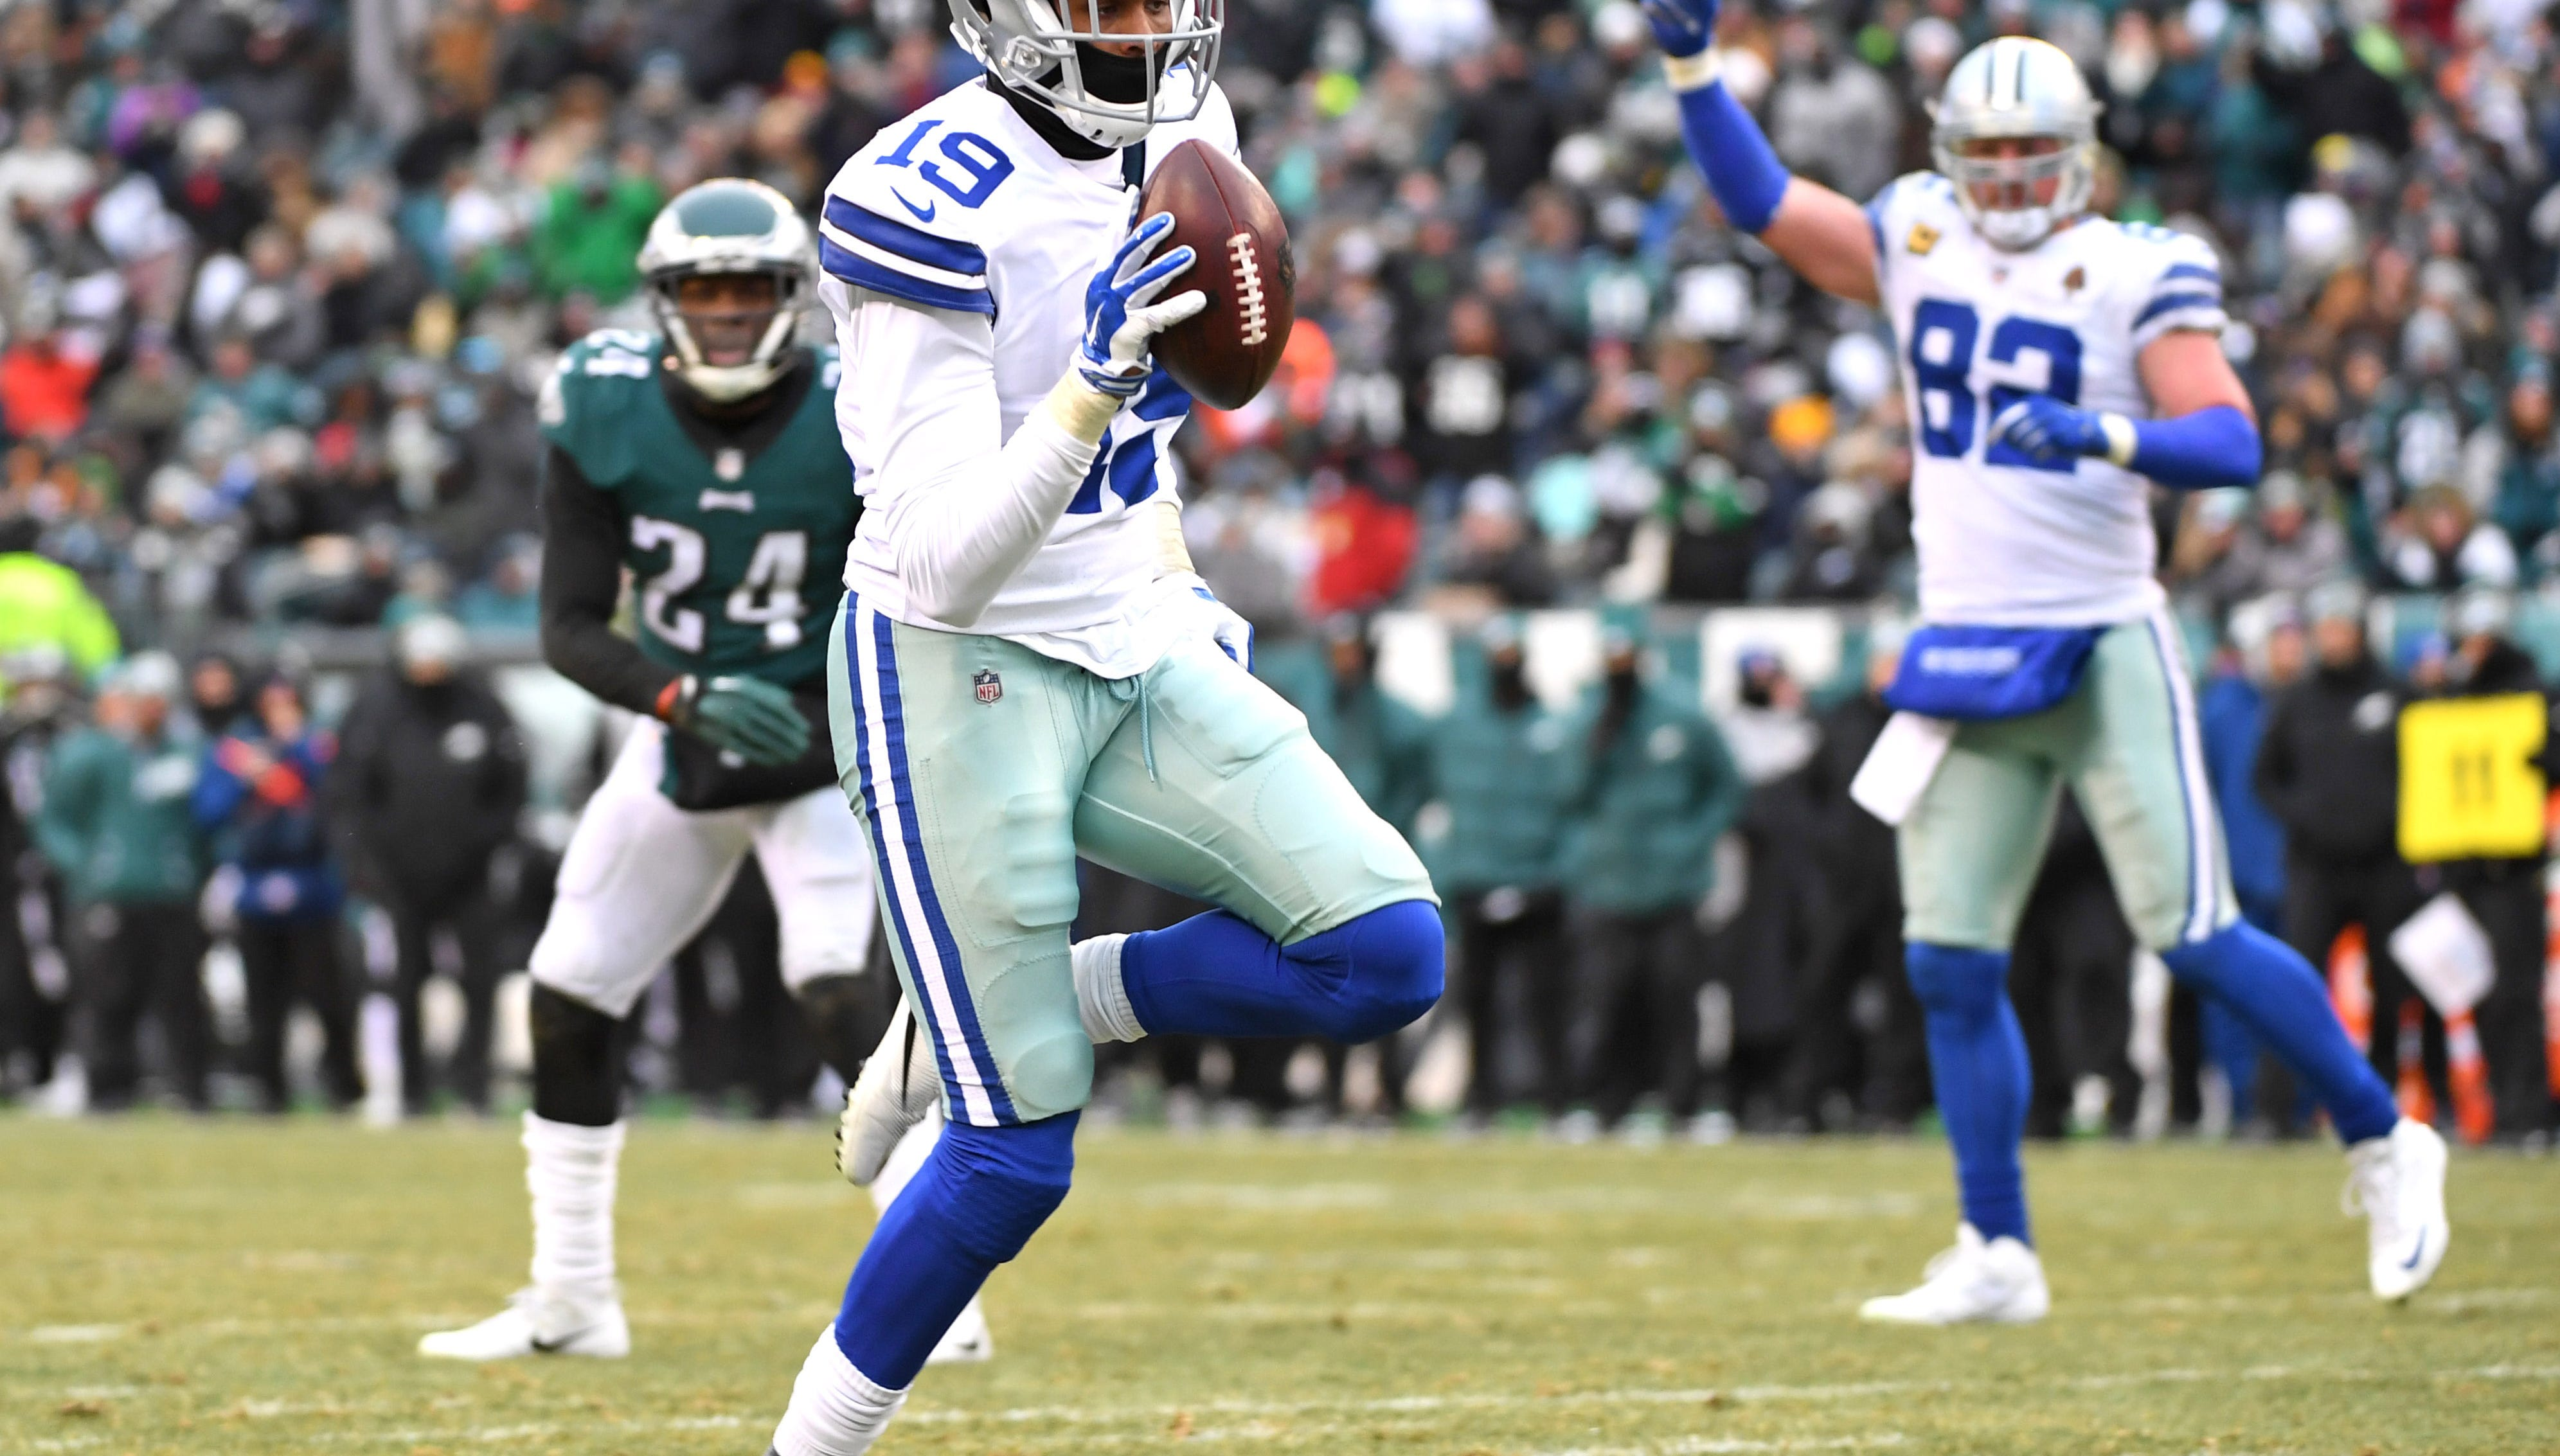 Dallas Cowboys wide receiver Brice Butler (19) celebrates his 20-yard touchdown  catch against the Philadelphia Eagles during the fourth quarter at Lincoln Financial Field.